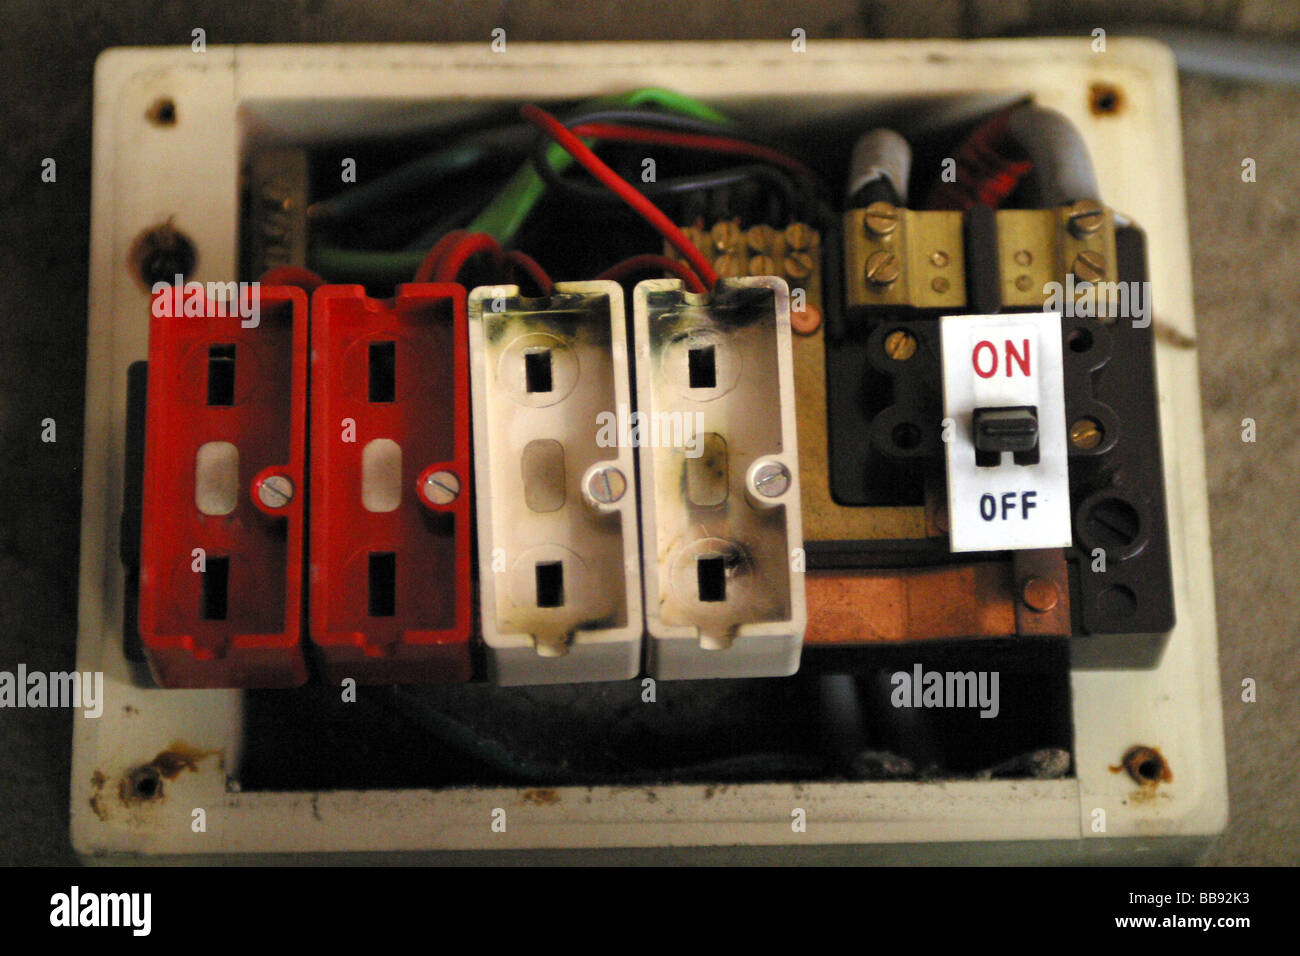 old style wire fuse box with no fuses installed BB92K3 fuse box stock photos & fuse box stock images alamy